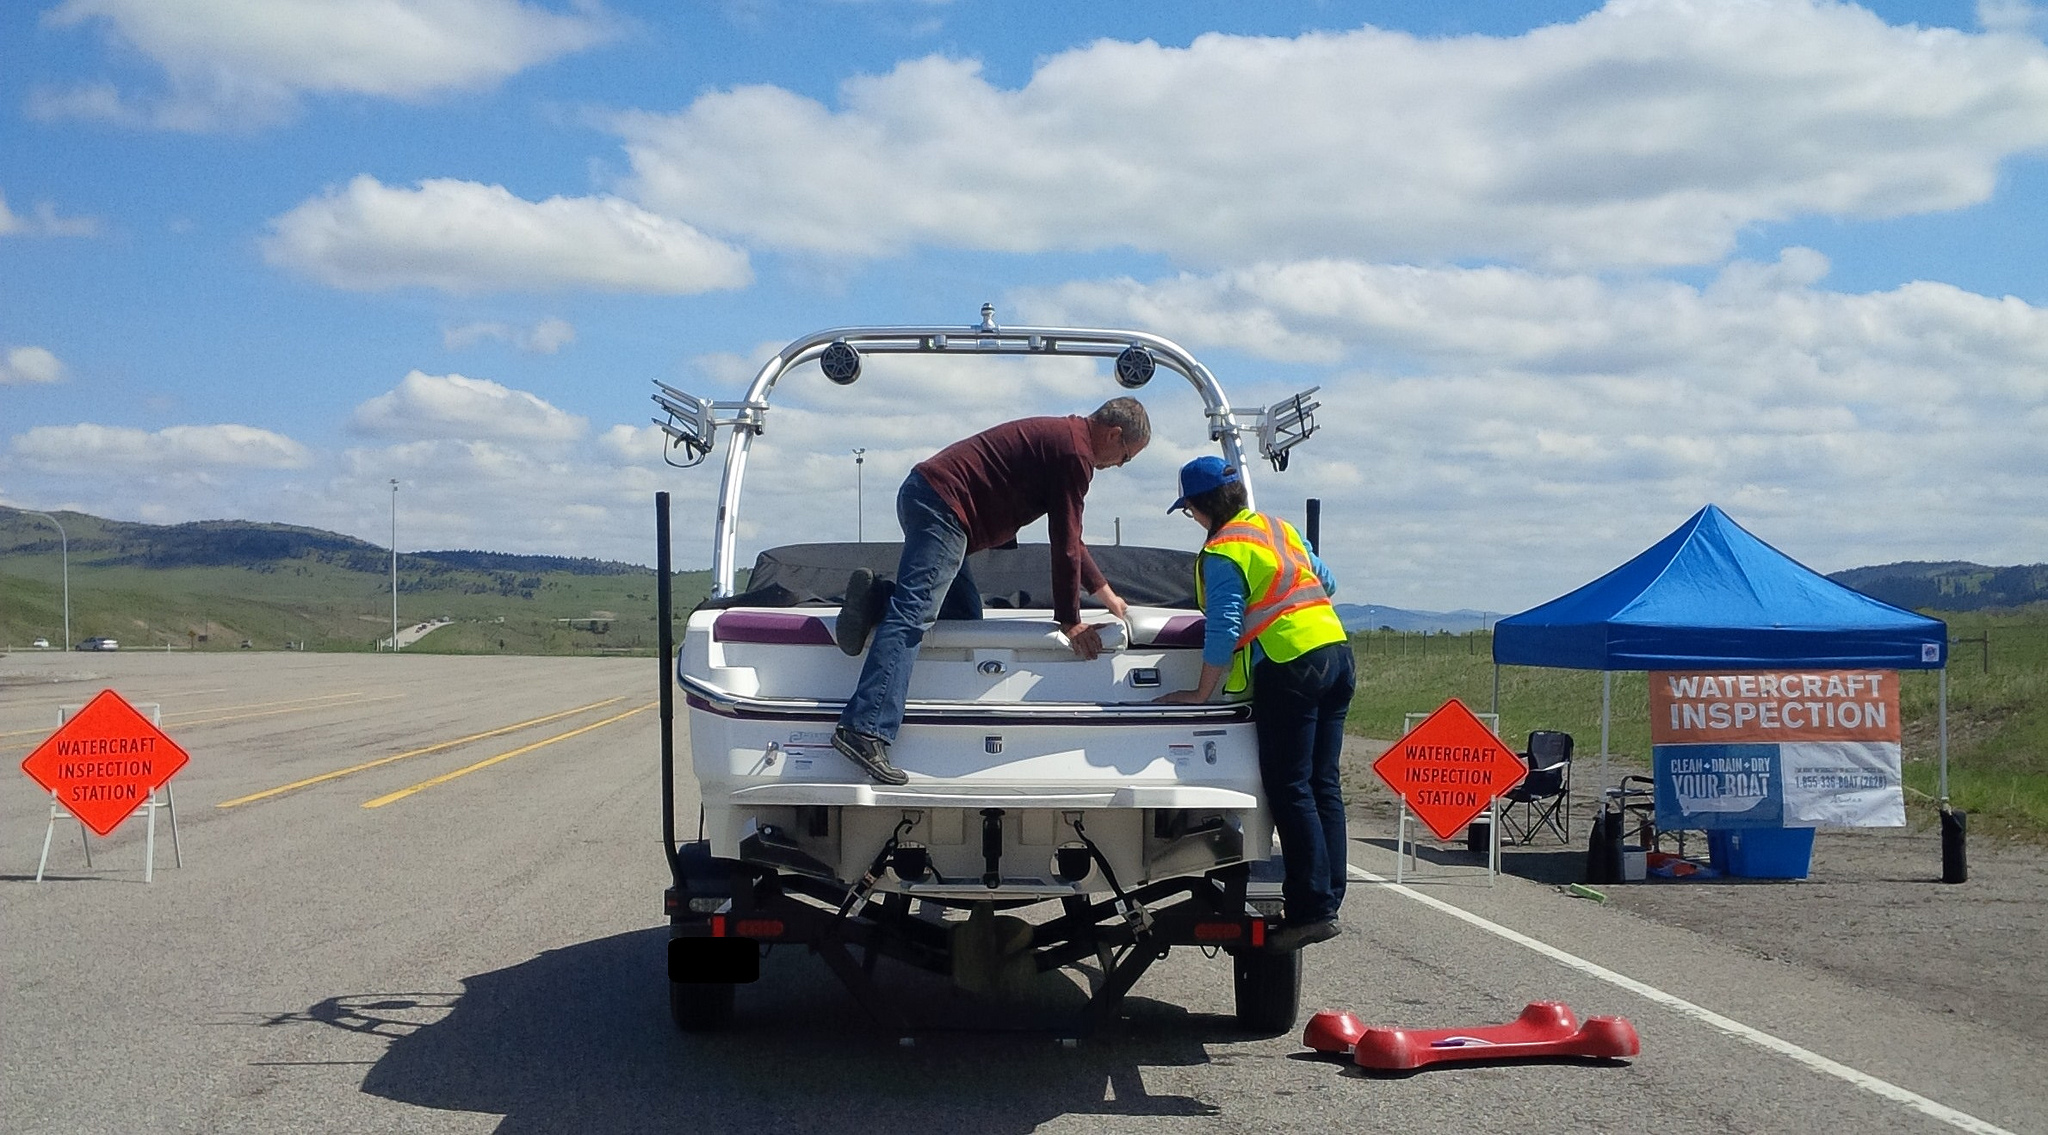 Image from: Alberta Environment and Sustainable Resource Development; Alberta Inspection Station